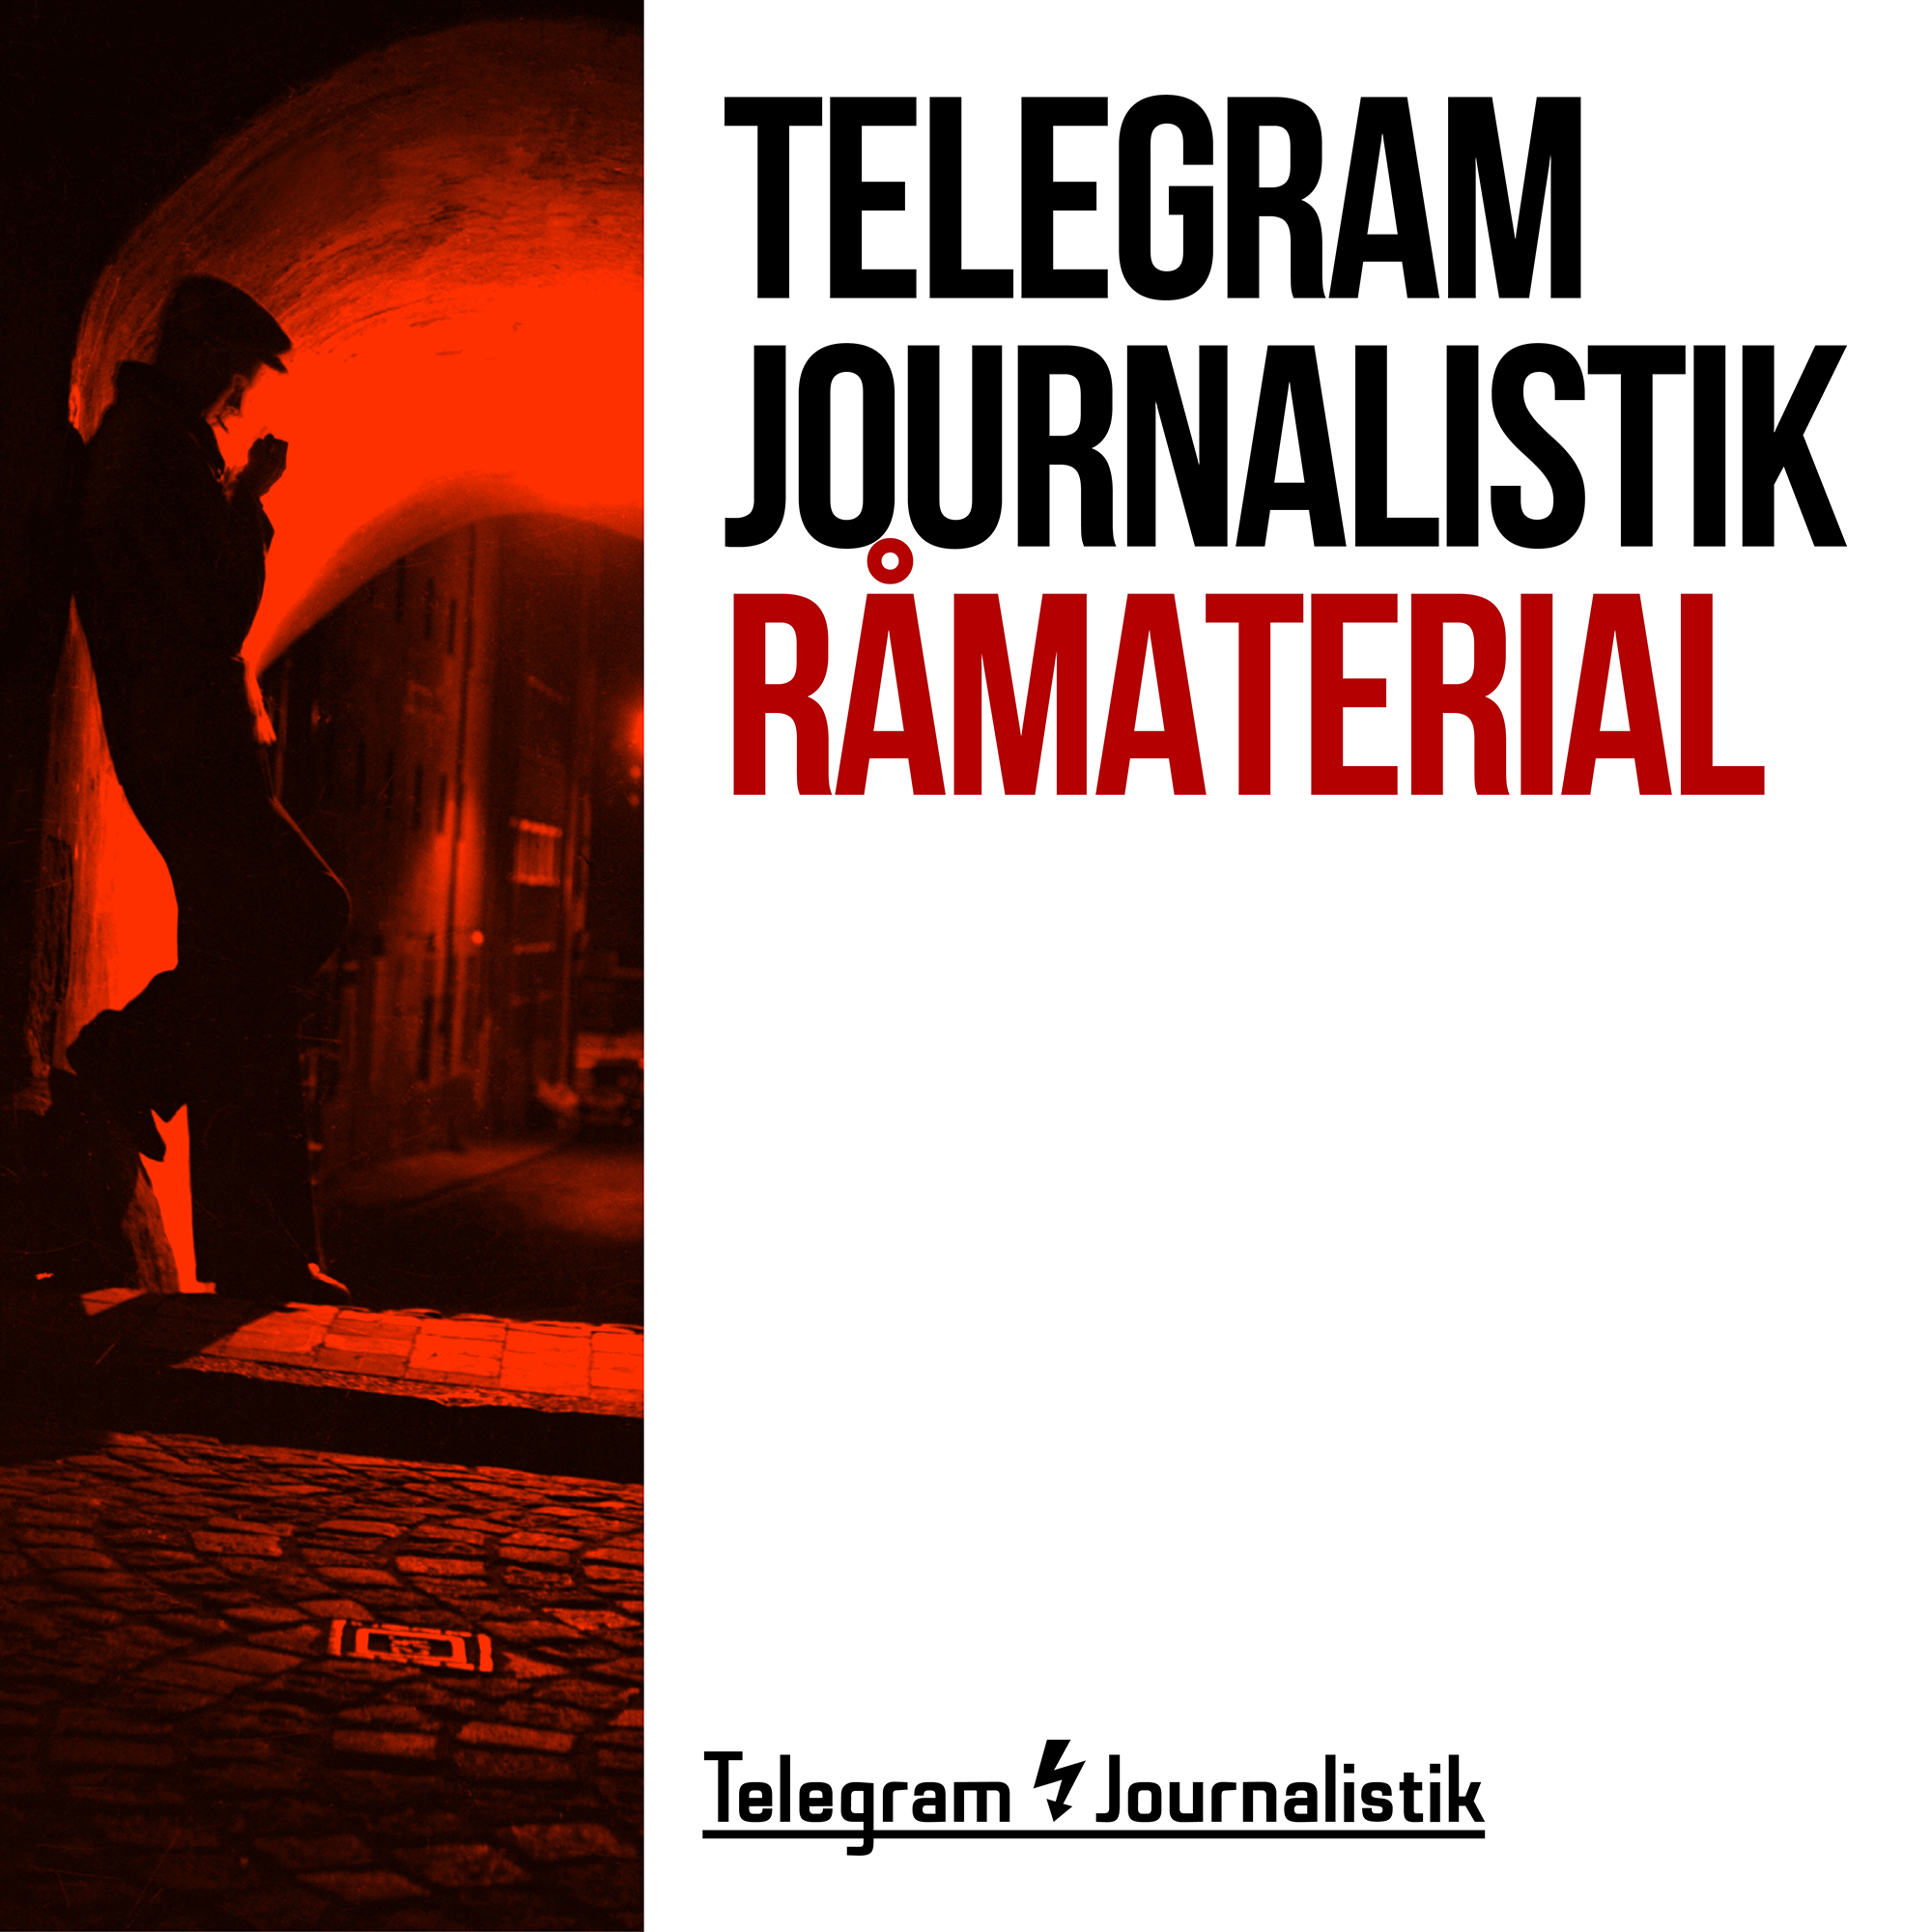 Telegram Journalistik Råmaterial